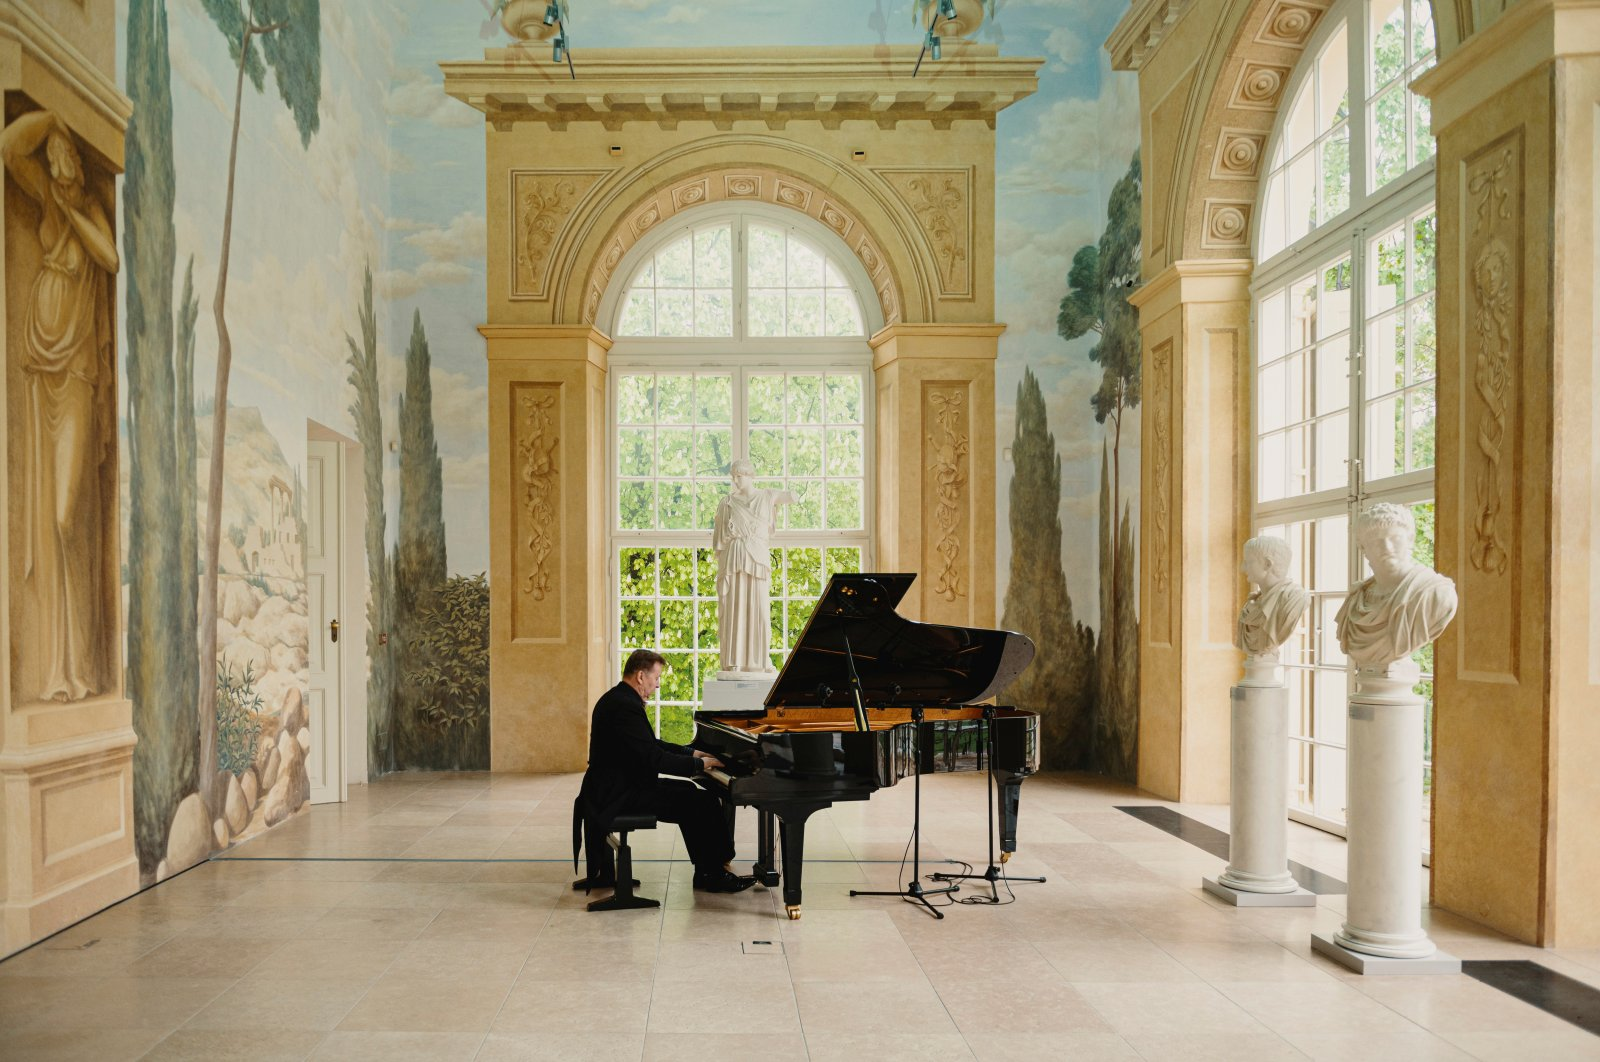 Pianist Karol Radziwonowicz plays Chopin's concert during a recording for online release, amid the outbreak of the coronavirus disease (COVID-19) in Warsaw, May 6, 2020. (Reuters Photo)